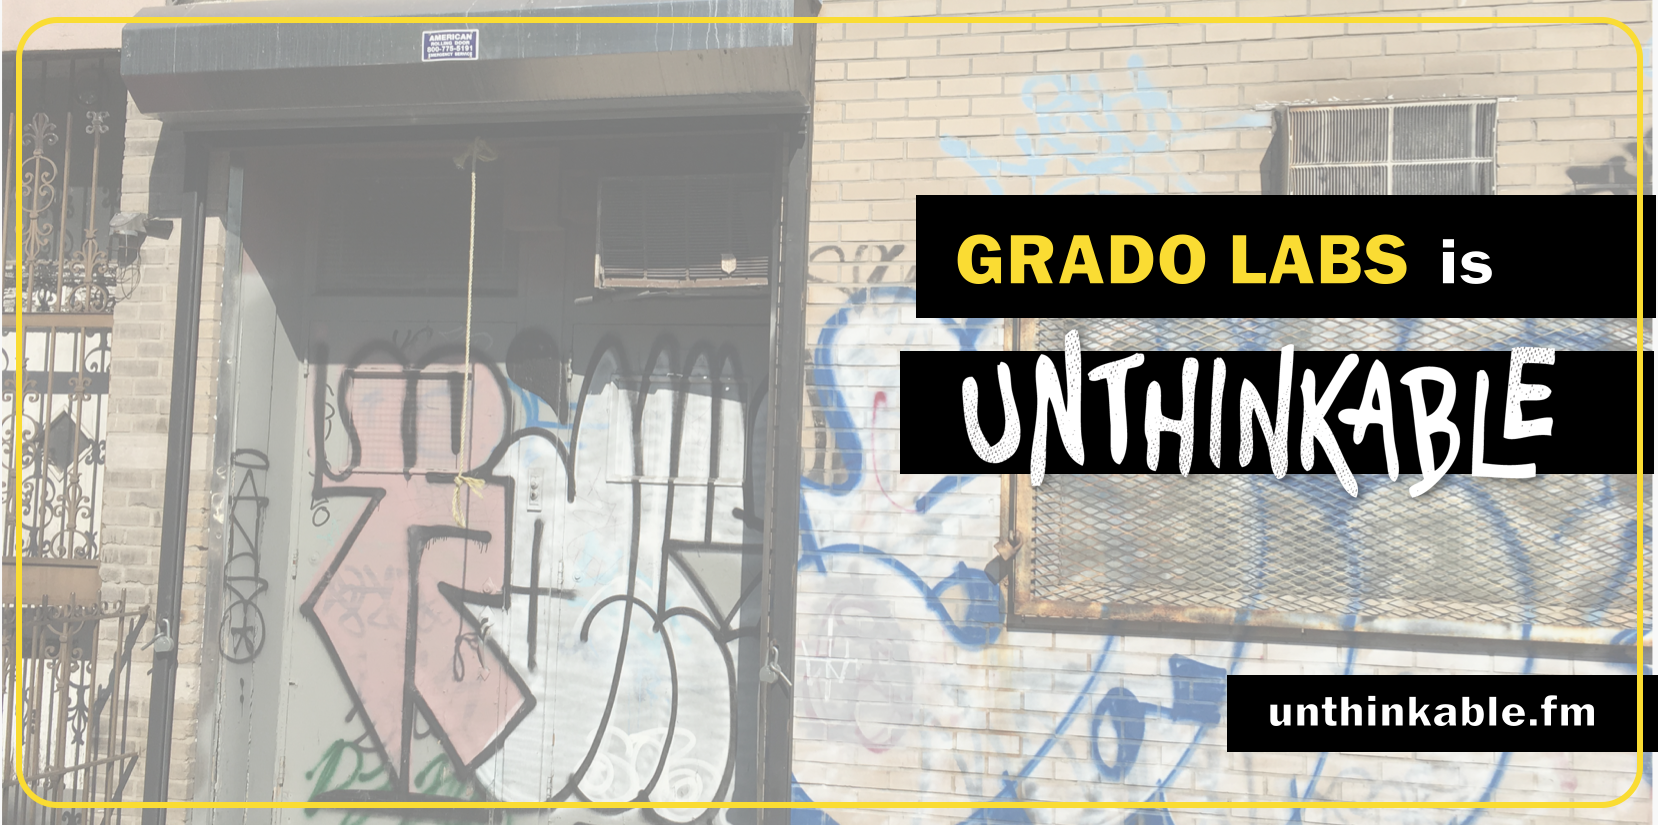 grado labs unthinkable.png